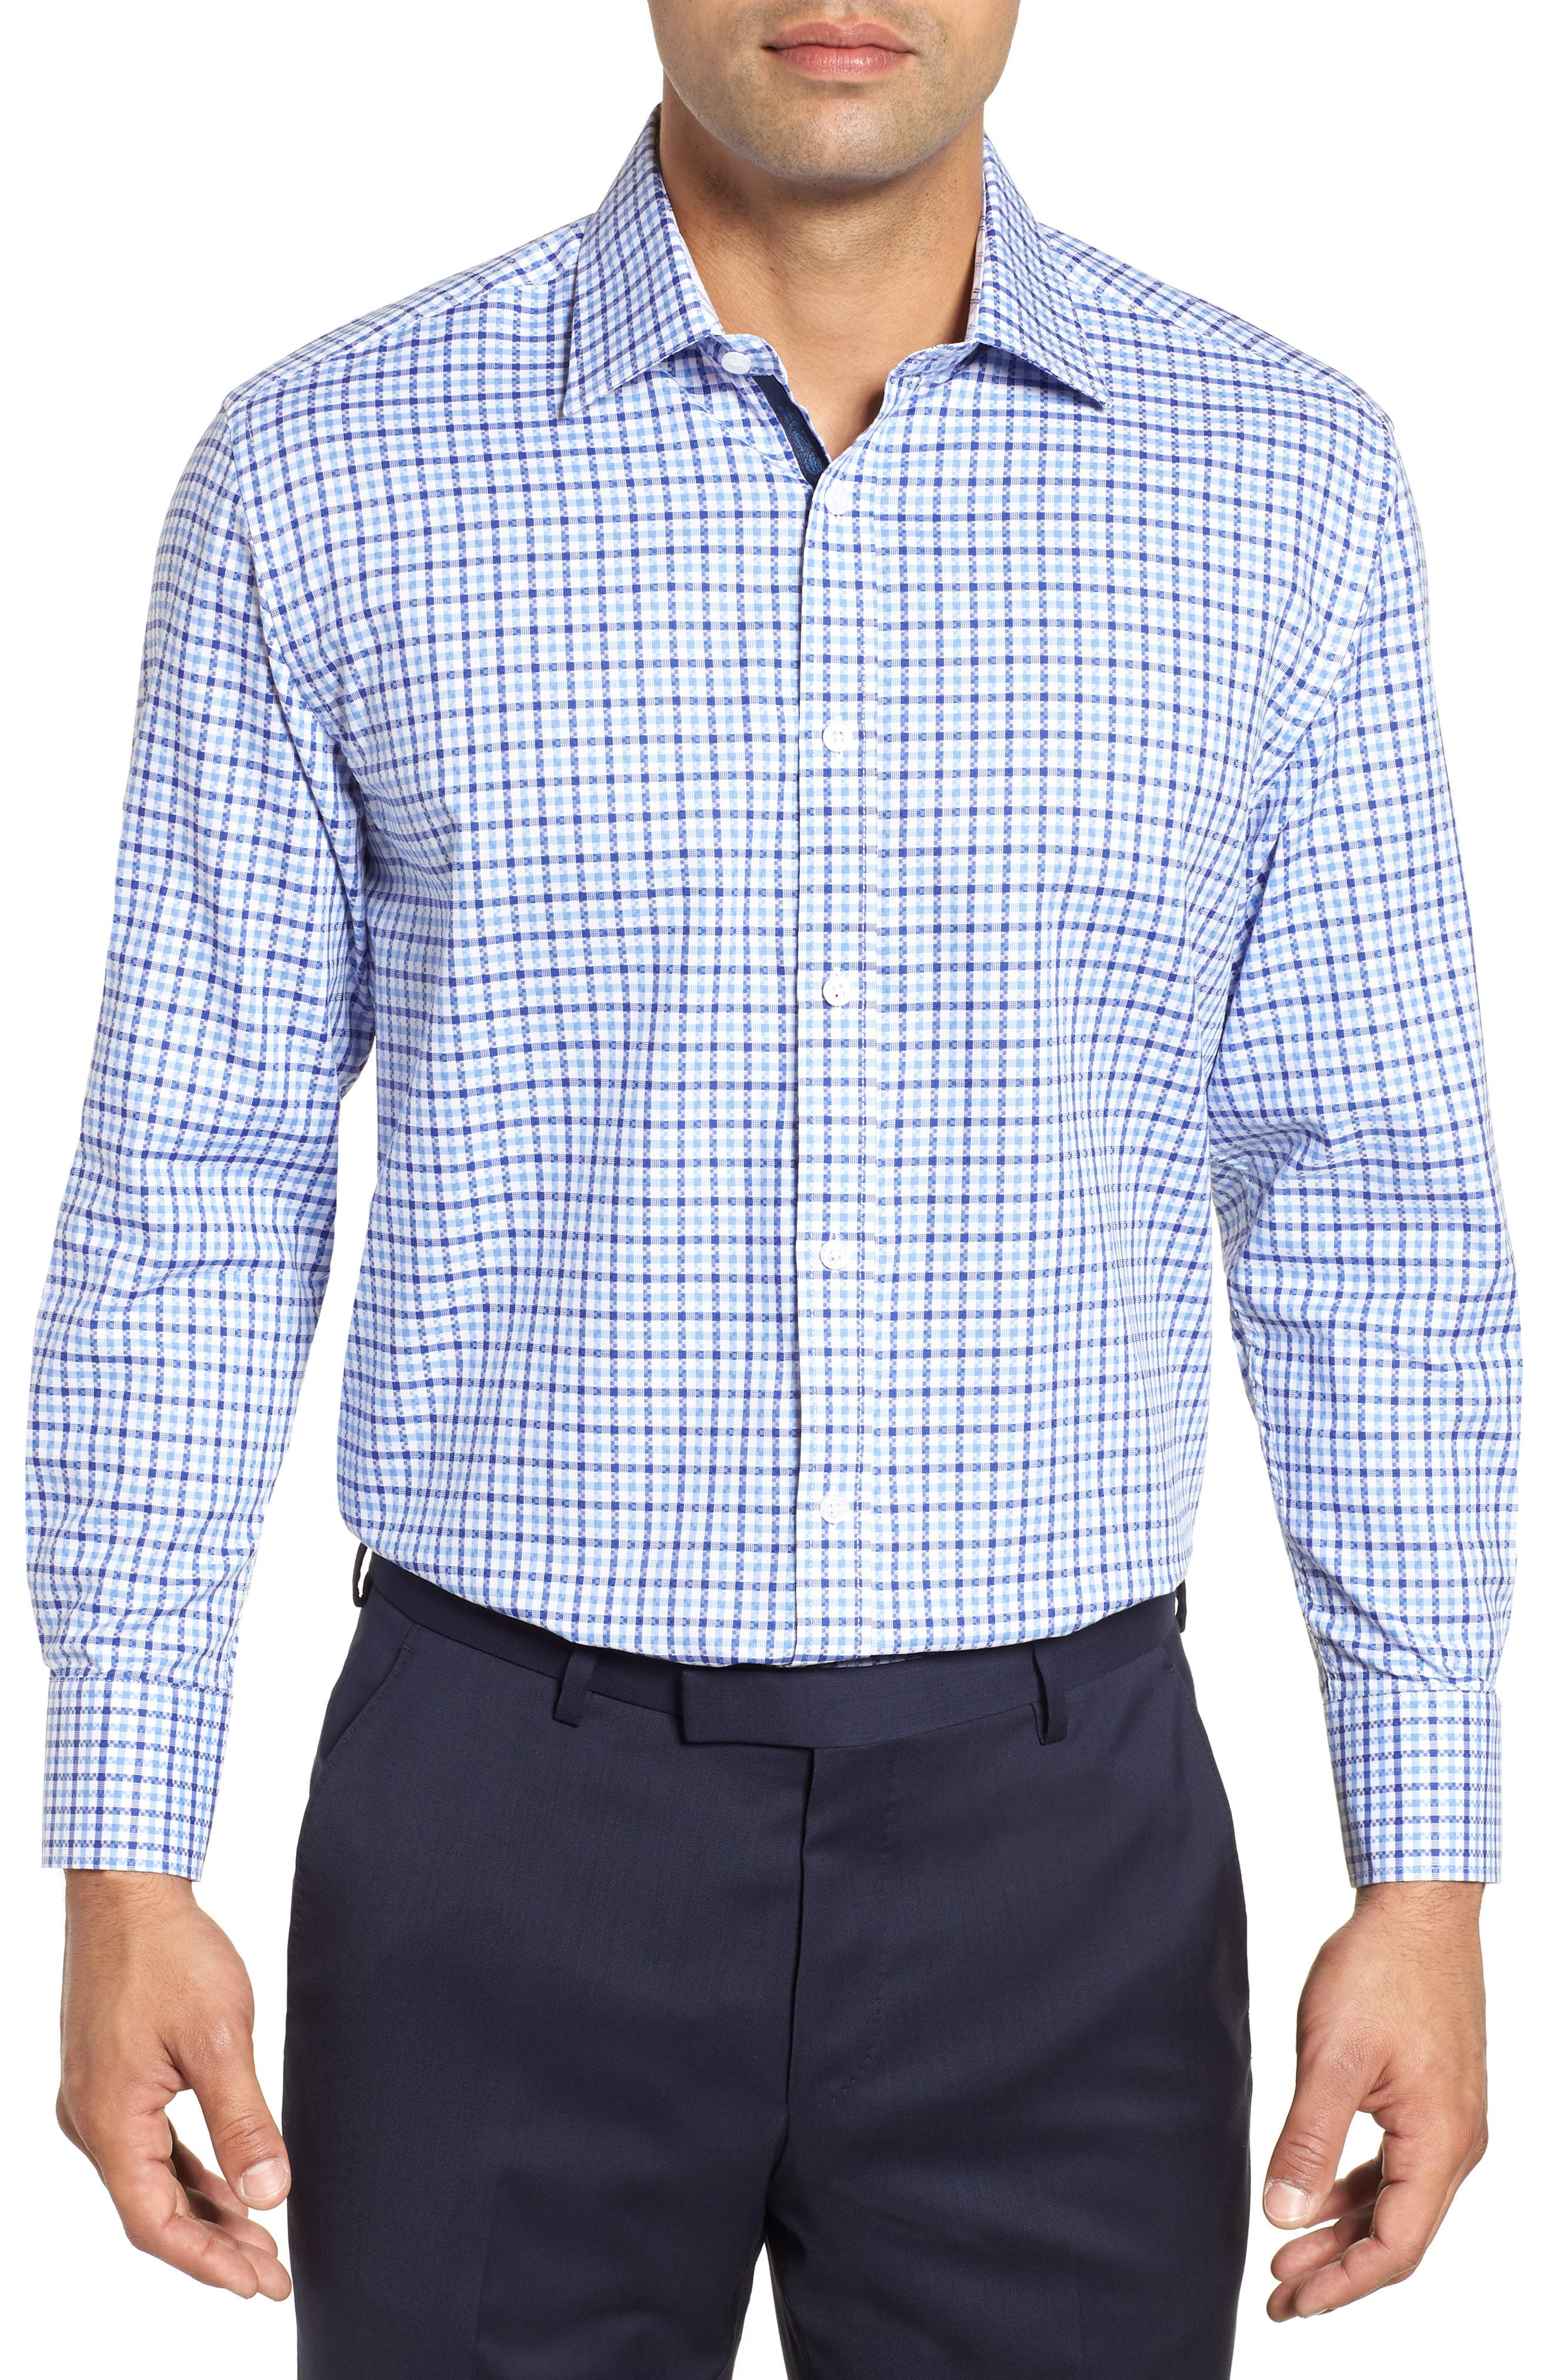 Regular Fit Check Dress Shirt,                             Main thumbnail 1, color,                             BLUE